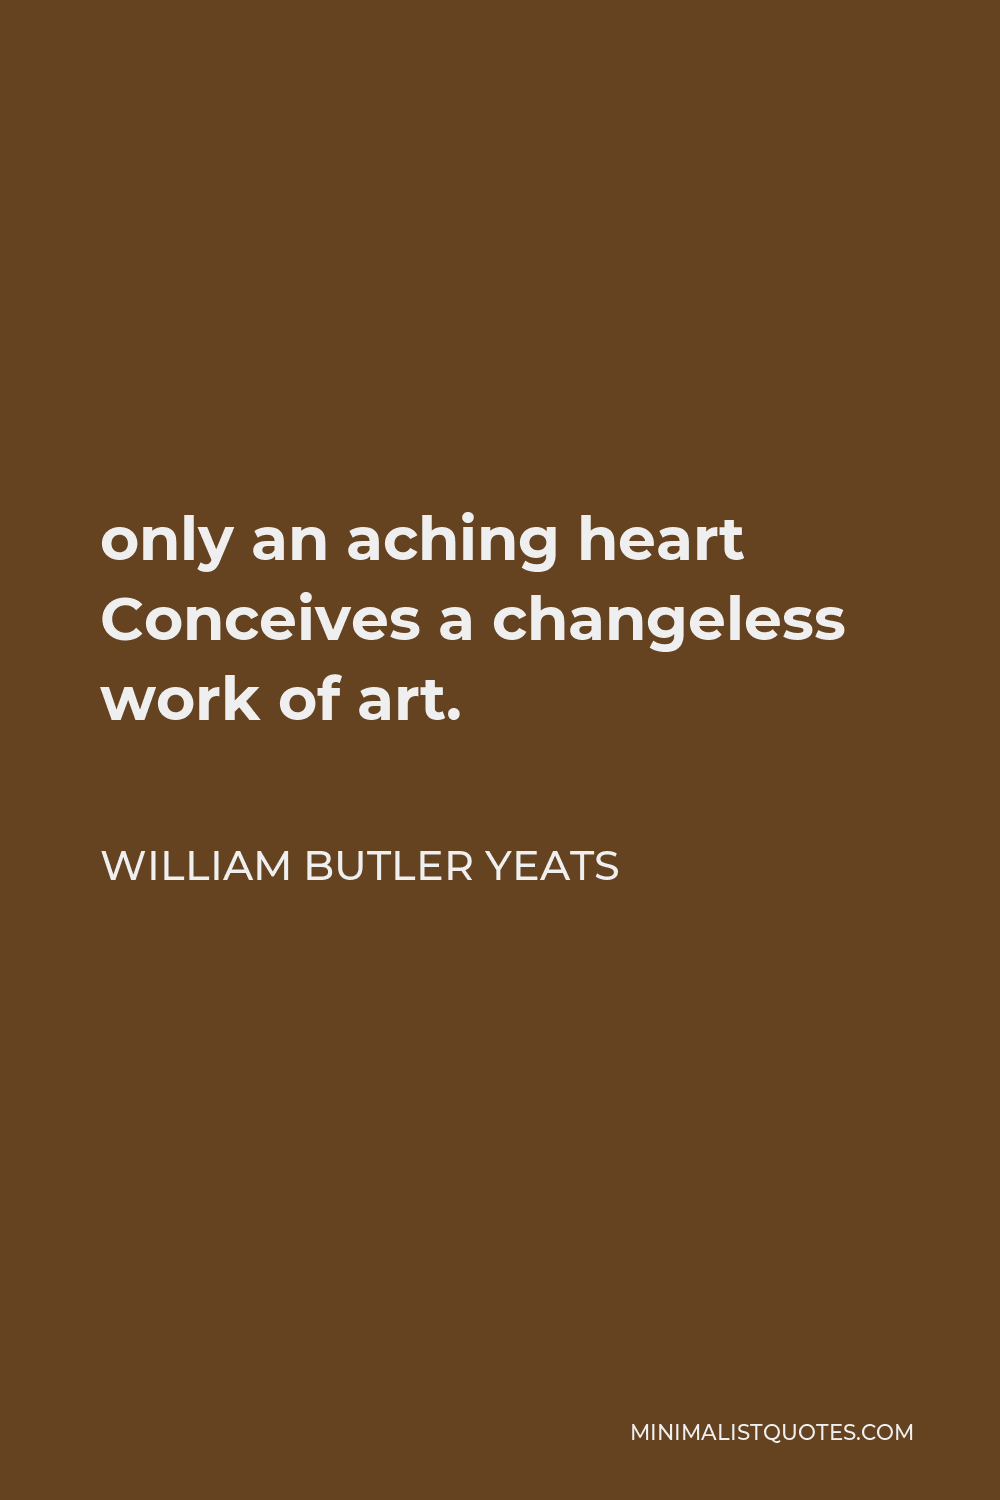 William Butler Yeats Quote - only an aching heart Conceives a changeless work of art.